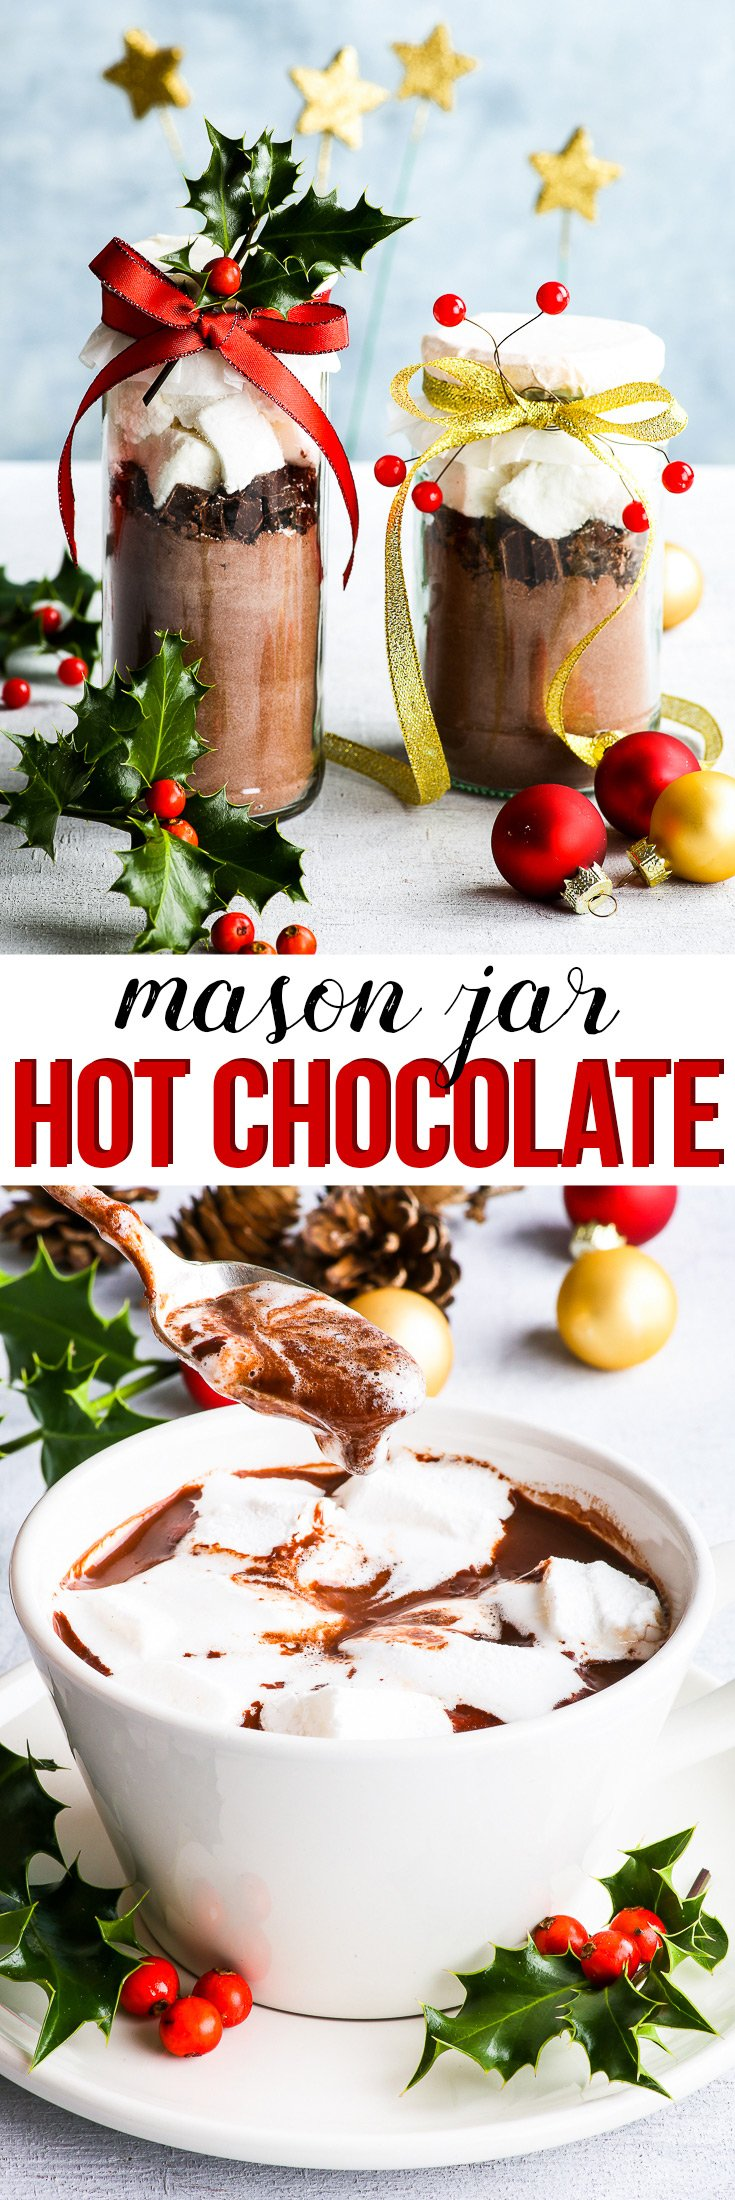 Mason Jar Hot Chocolate DIY Christmas Gifts {gluten, dairy, egg, nut & soy free} - This mason jar hot chocolate makes the perfect edible DIY Christmas gift. With a simple hot chocolate mix, chopped dark chocolate and homemade marshmallows, this simple yet thoughtful DIY gift will be loved by all – even the grinchiest of Grinches! #christmas #diygift #masonjar #chocolate